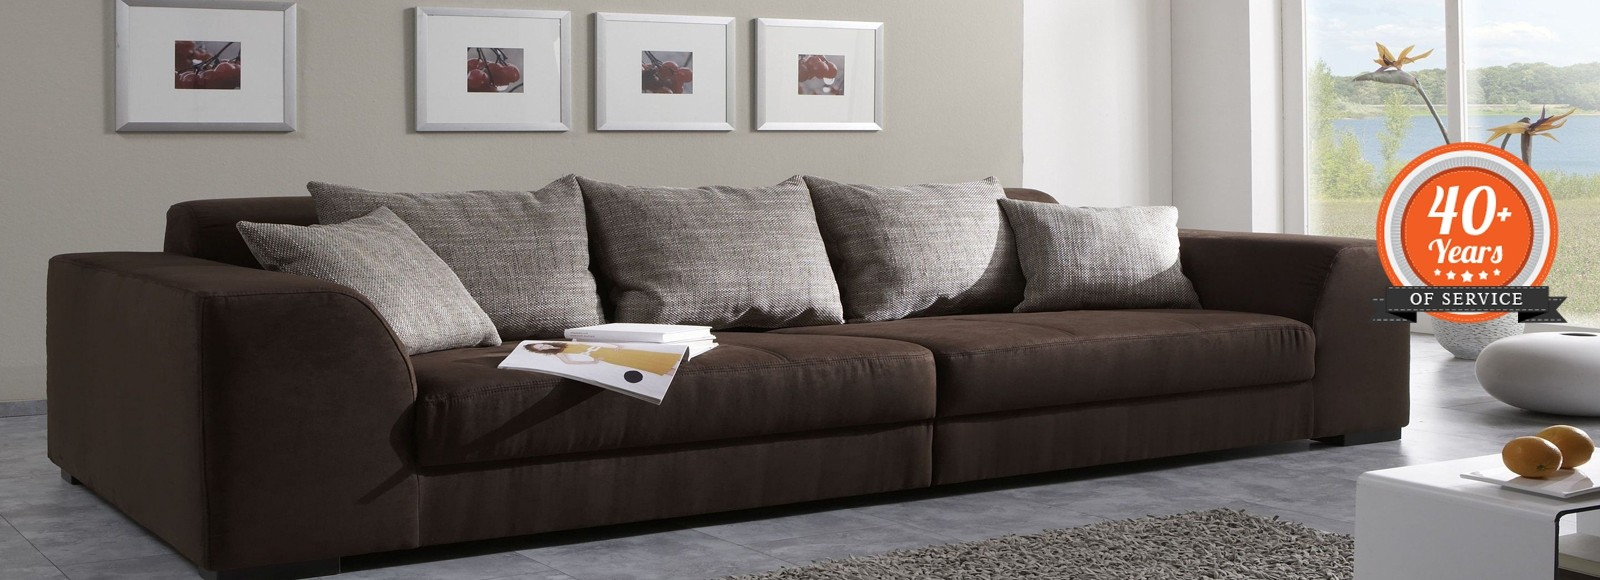 Recliner Sofa Repair Chennai Kns Rajan Services Sofa Repair And Service Recliner Repair And